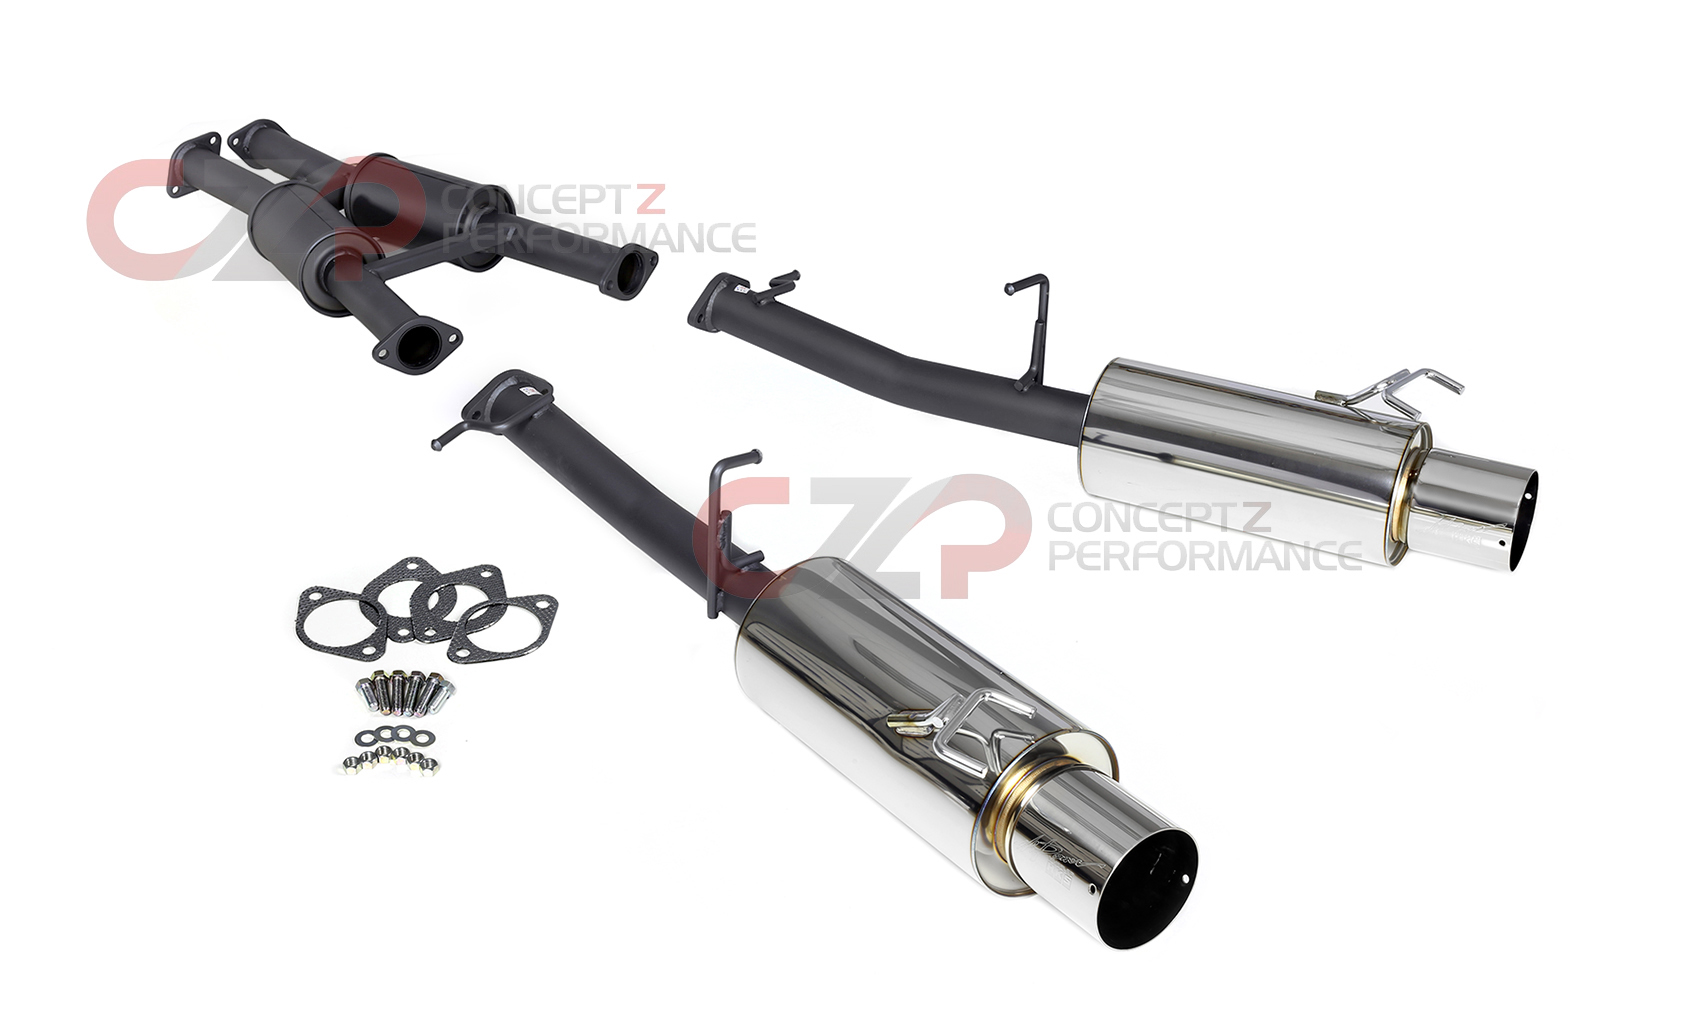 HKS Hi-Power / Hiper Catback Exhaust System 2-Seater Coupe - Nissan 300ZX 90-95 Z32 - IN STOCK!!!